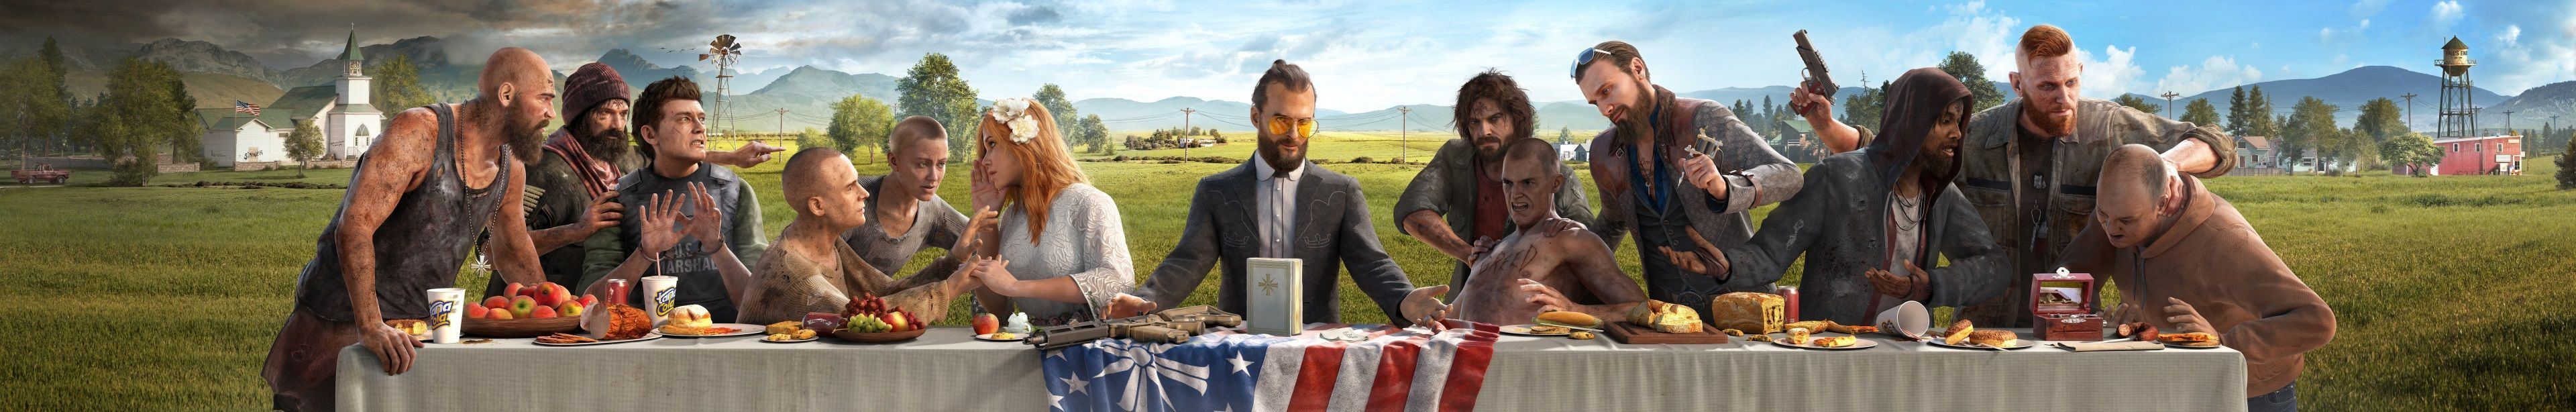 3840614 Joseph Seed 4k Download Wallpaper Free 4k Far Cry 5 Samsung Wallpaper 8k Wallpaper